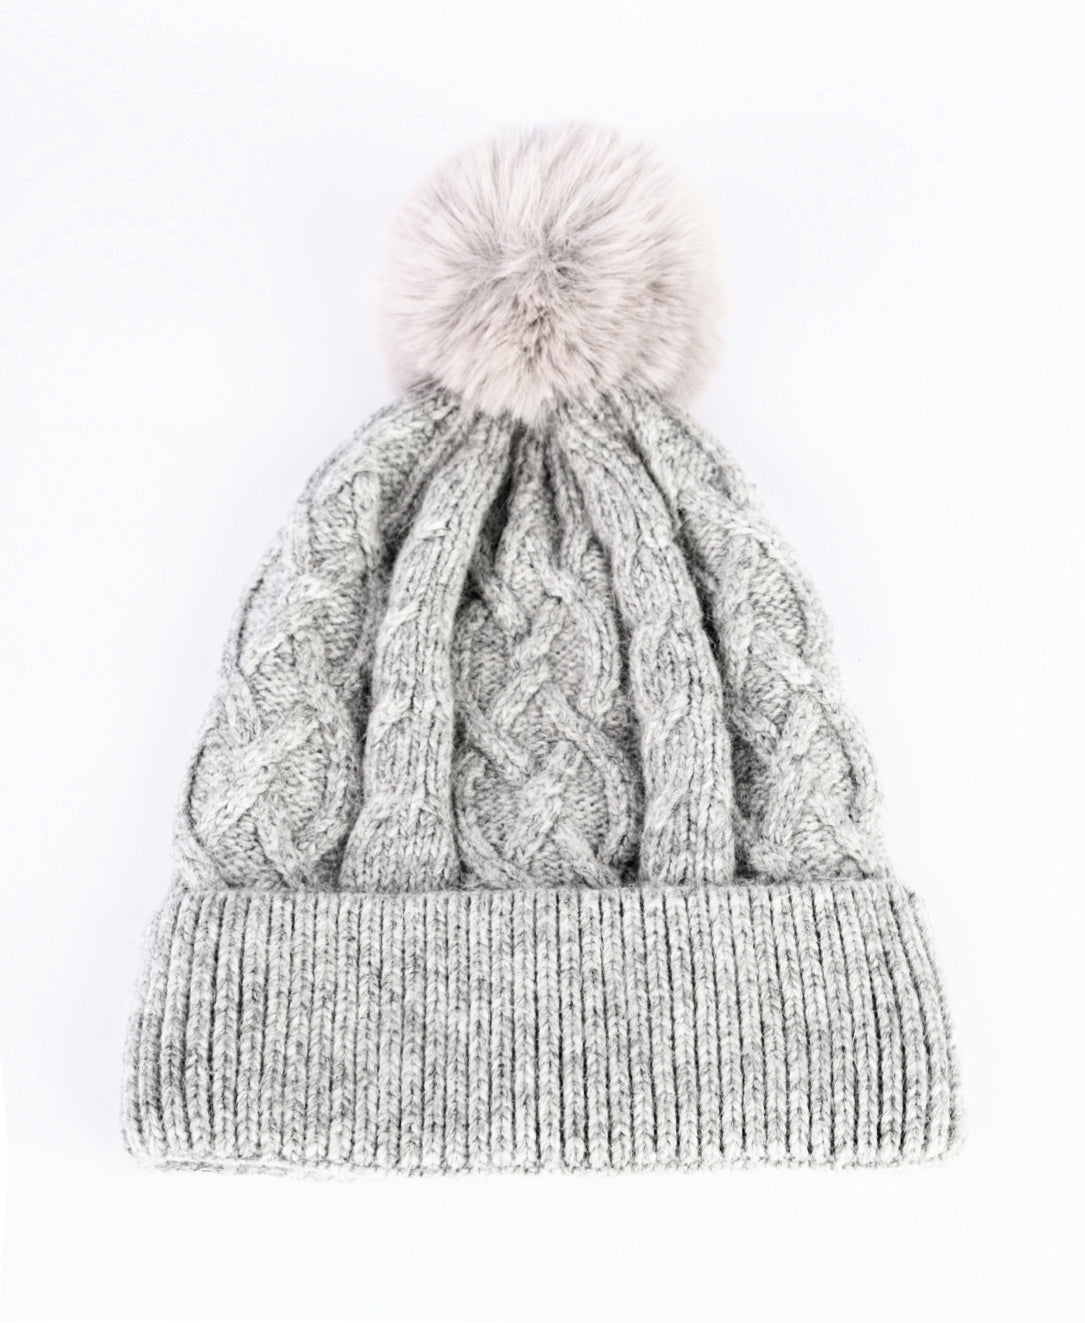 ANYA - Cashmere Bobble Hat - Light Grey